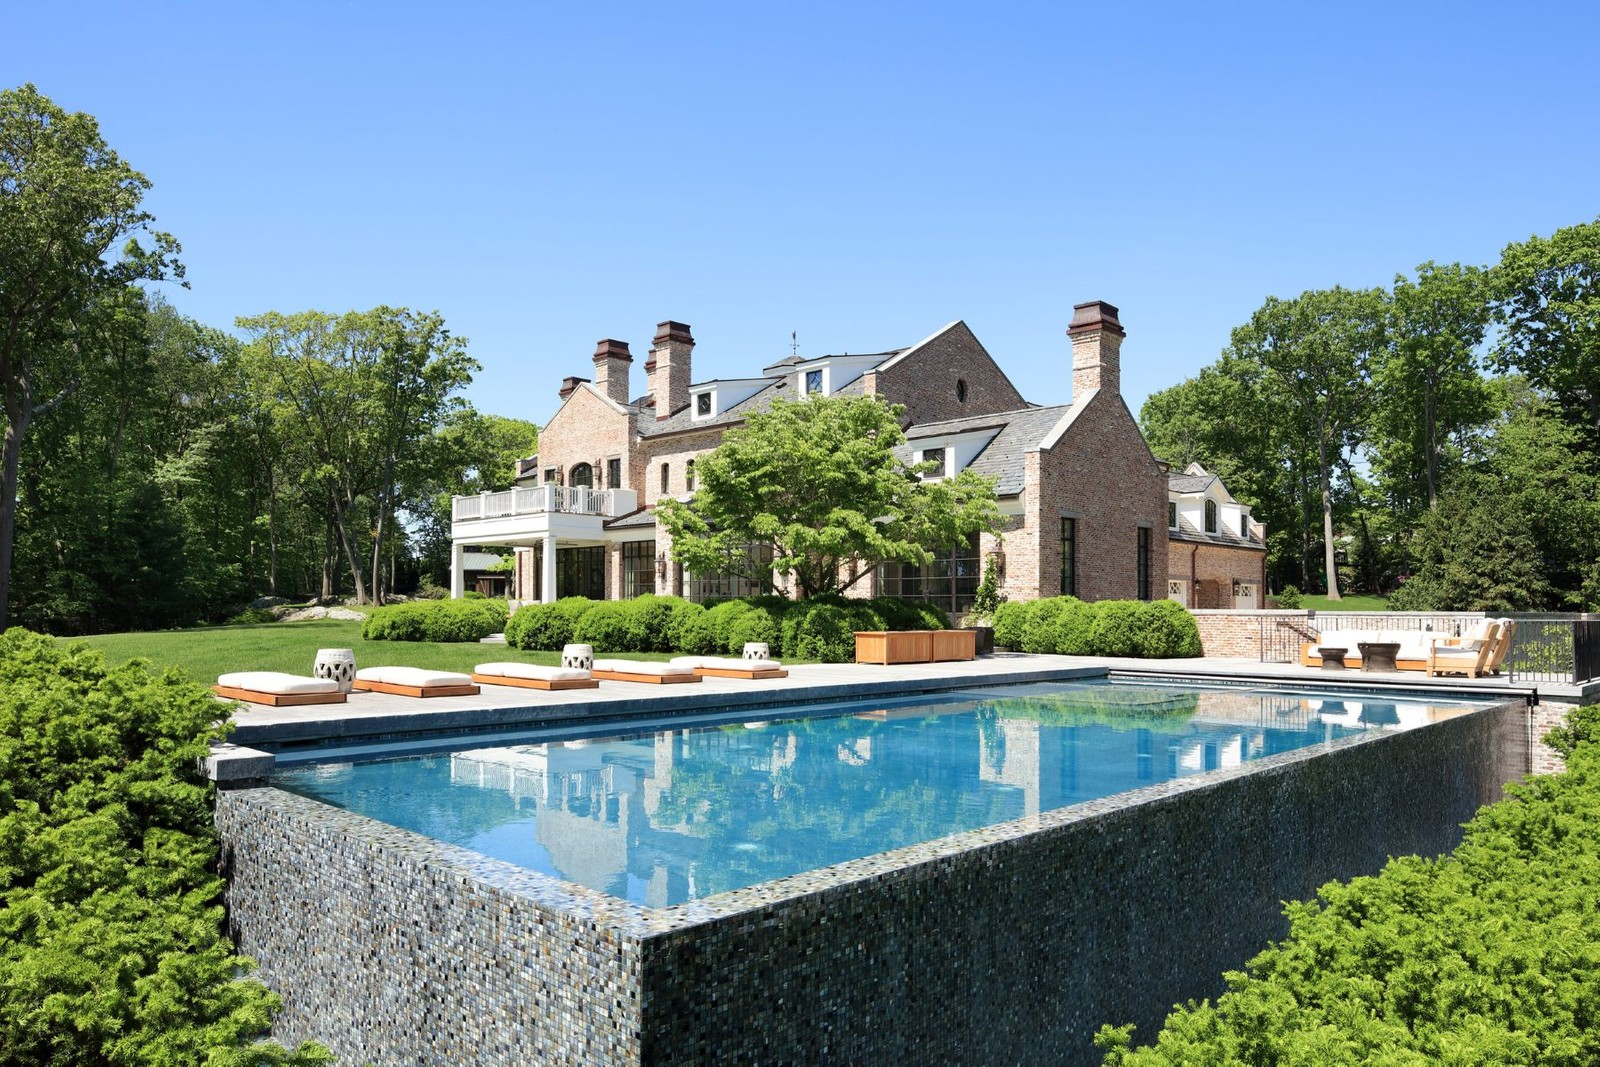 Tom Brady's Brookline, Massachusetts mansion